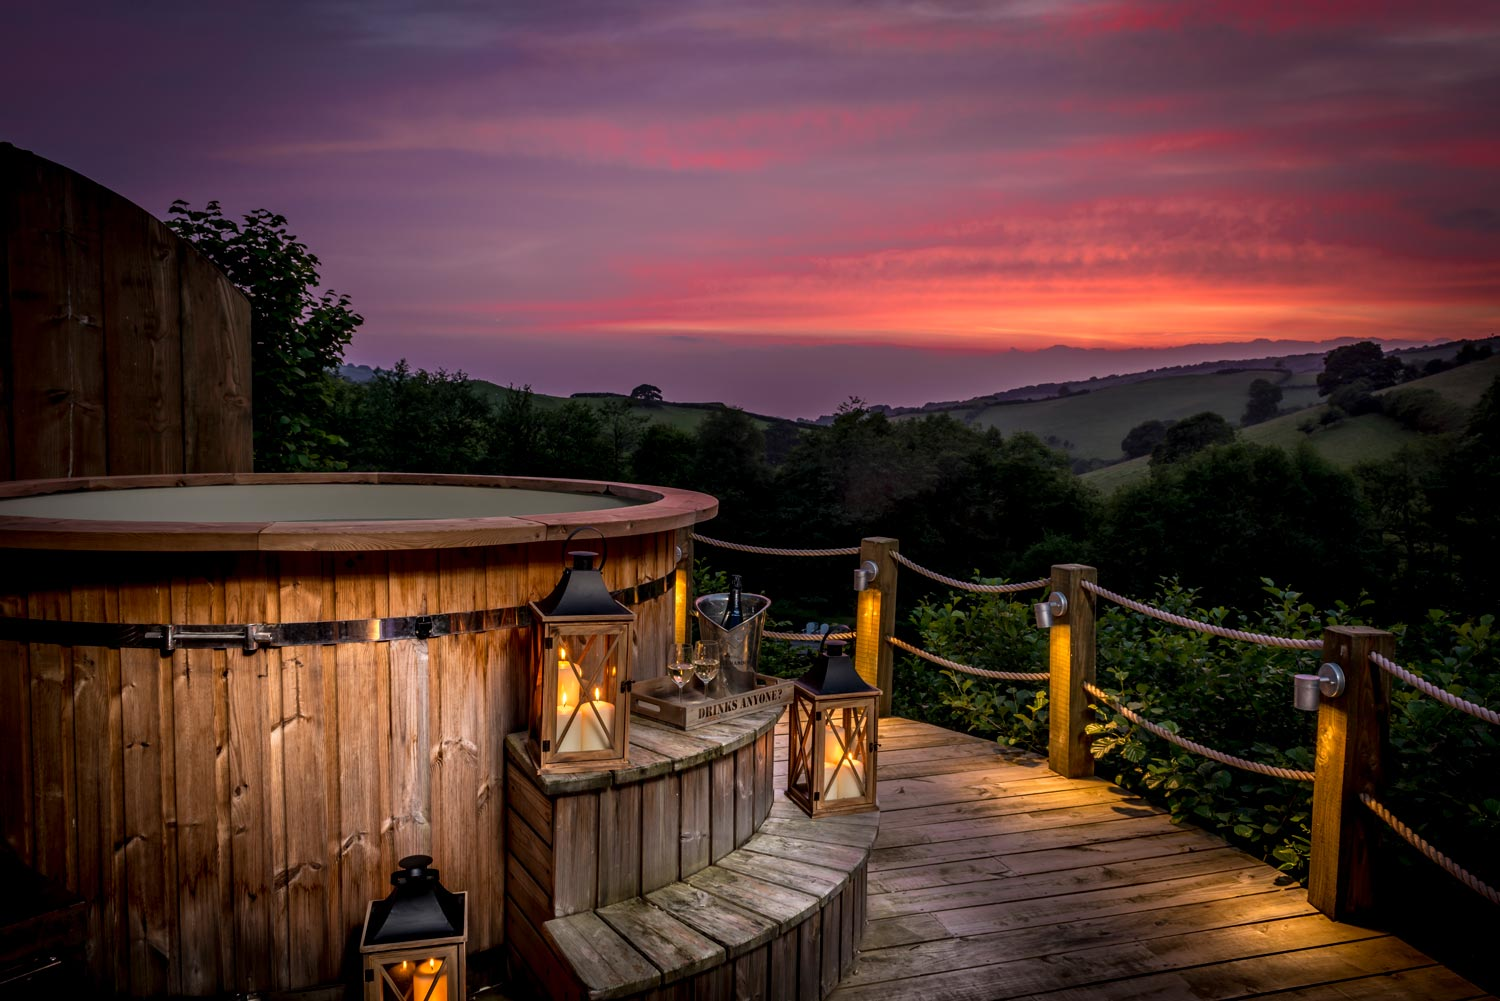 Views from the hot tub at Longlands luxury glamping lodges in the South West, Devon.